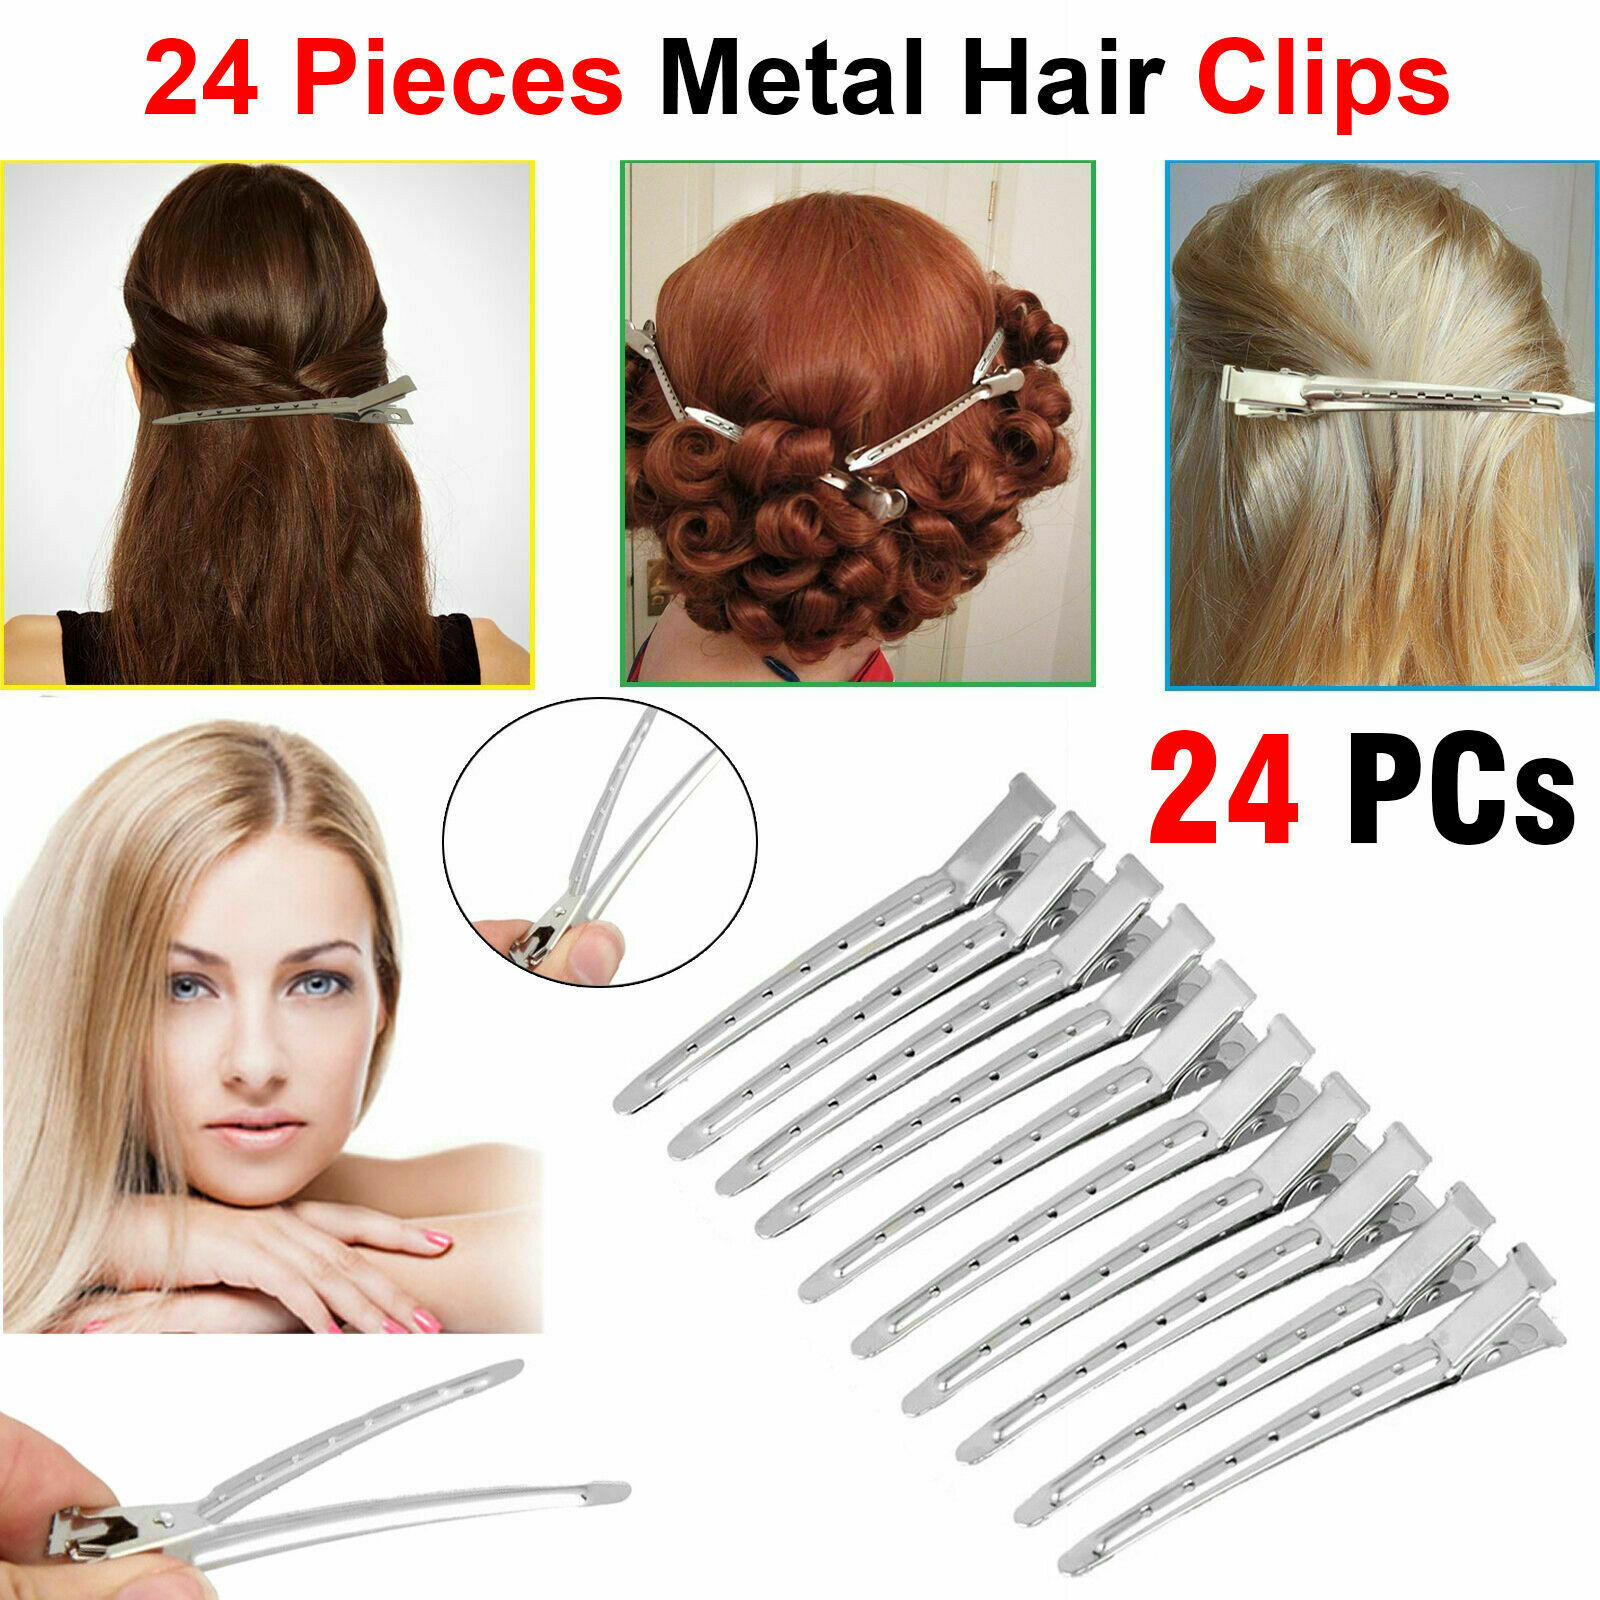 24Pcs Plastic Hair Sectioning Clips Crocodile Hairdressing Salon Grip Clamps